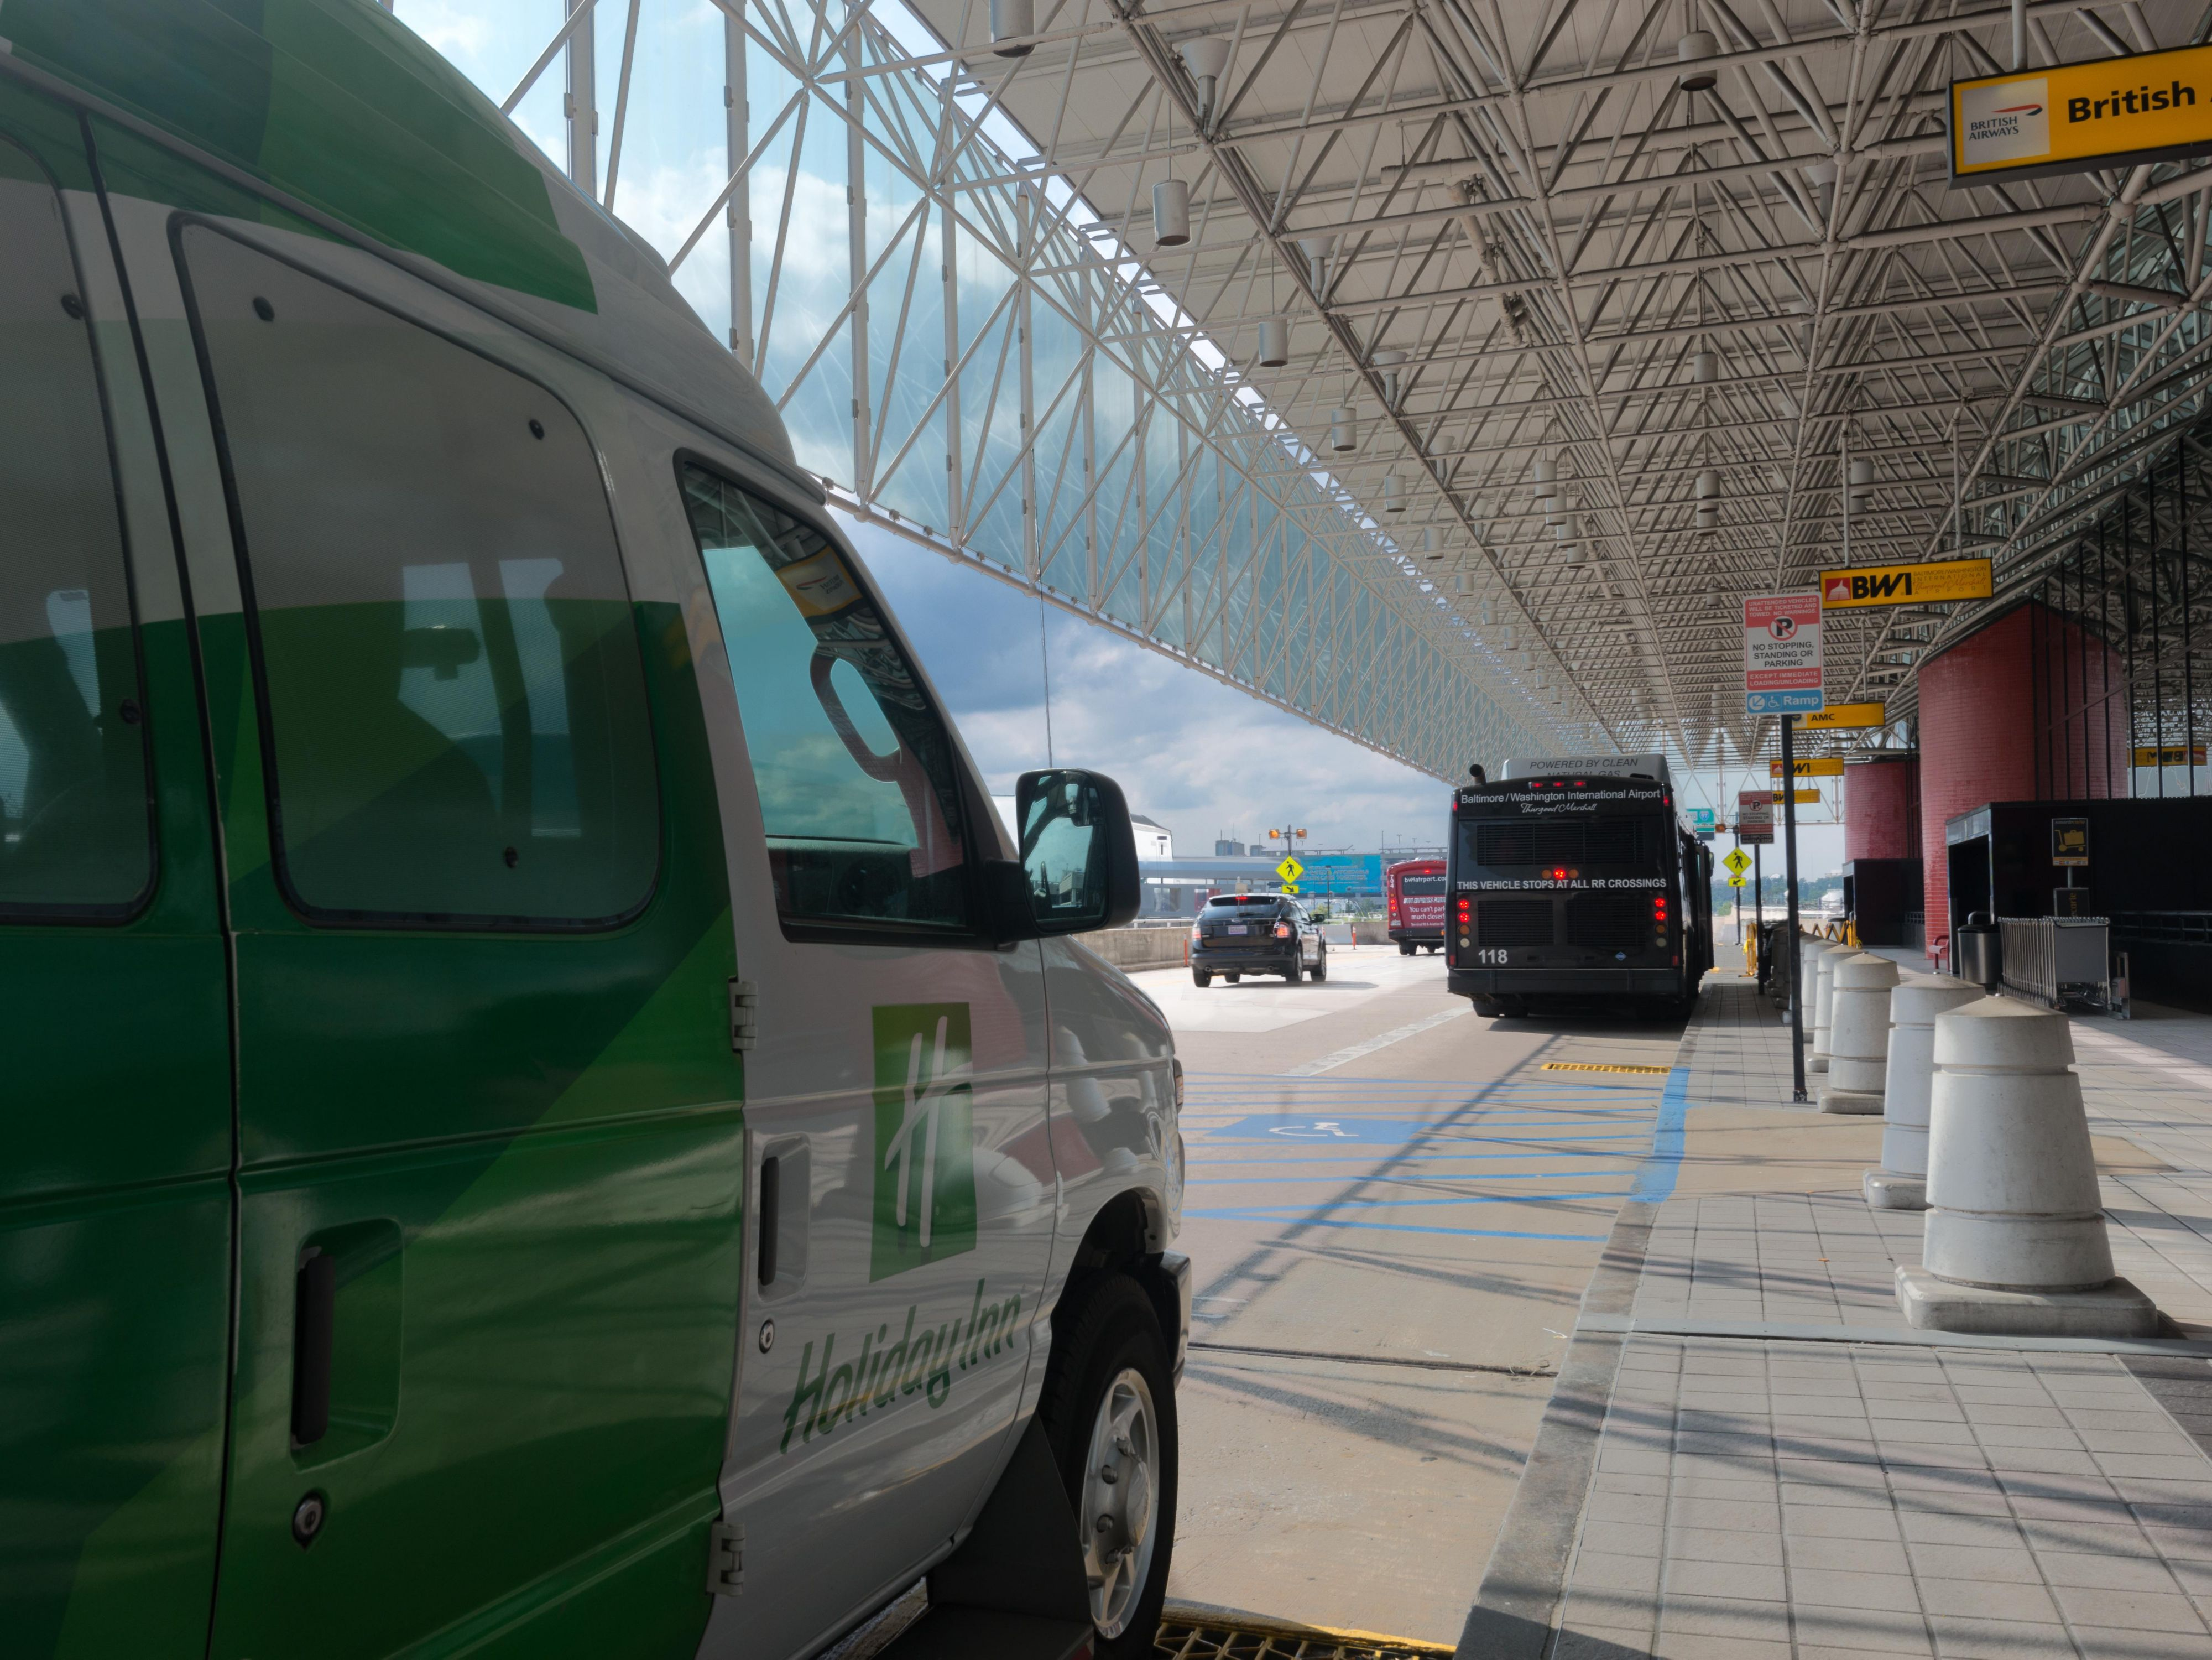 Shuttle service to and from airport